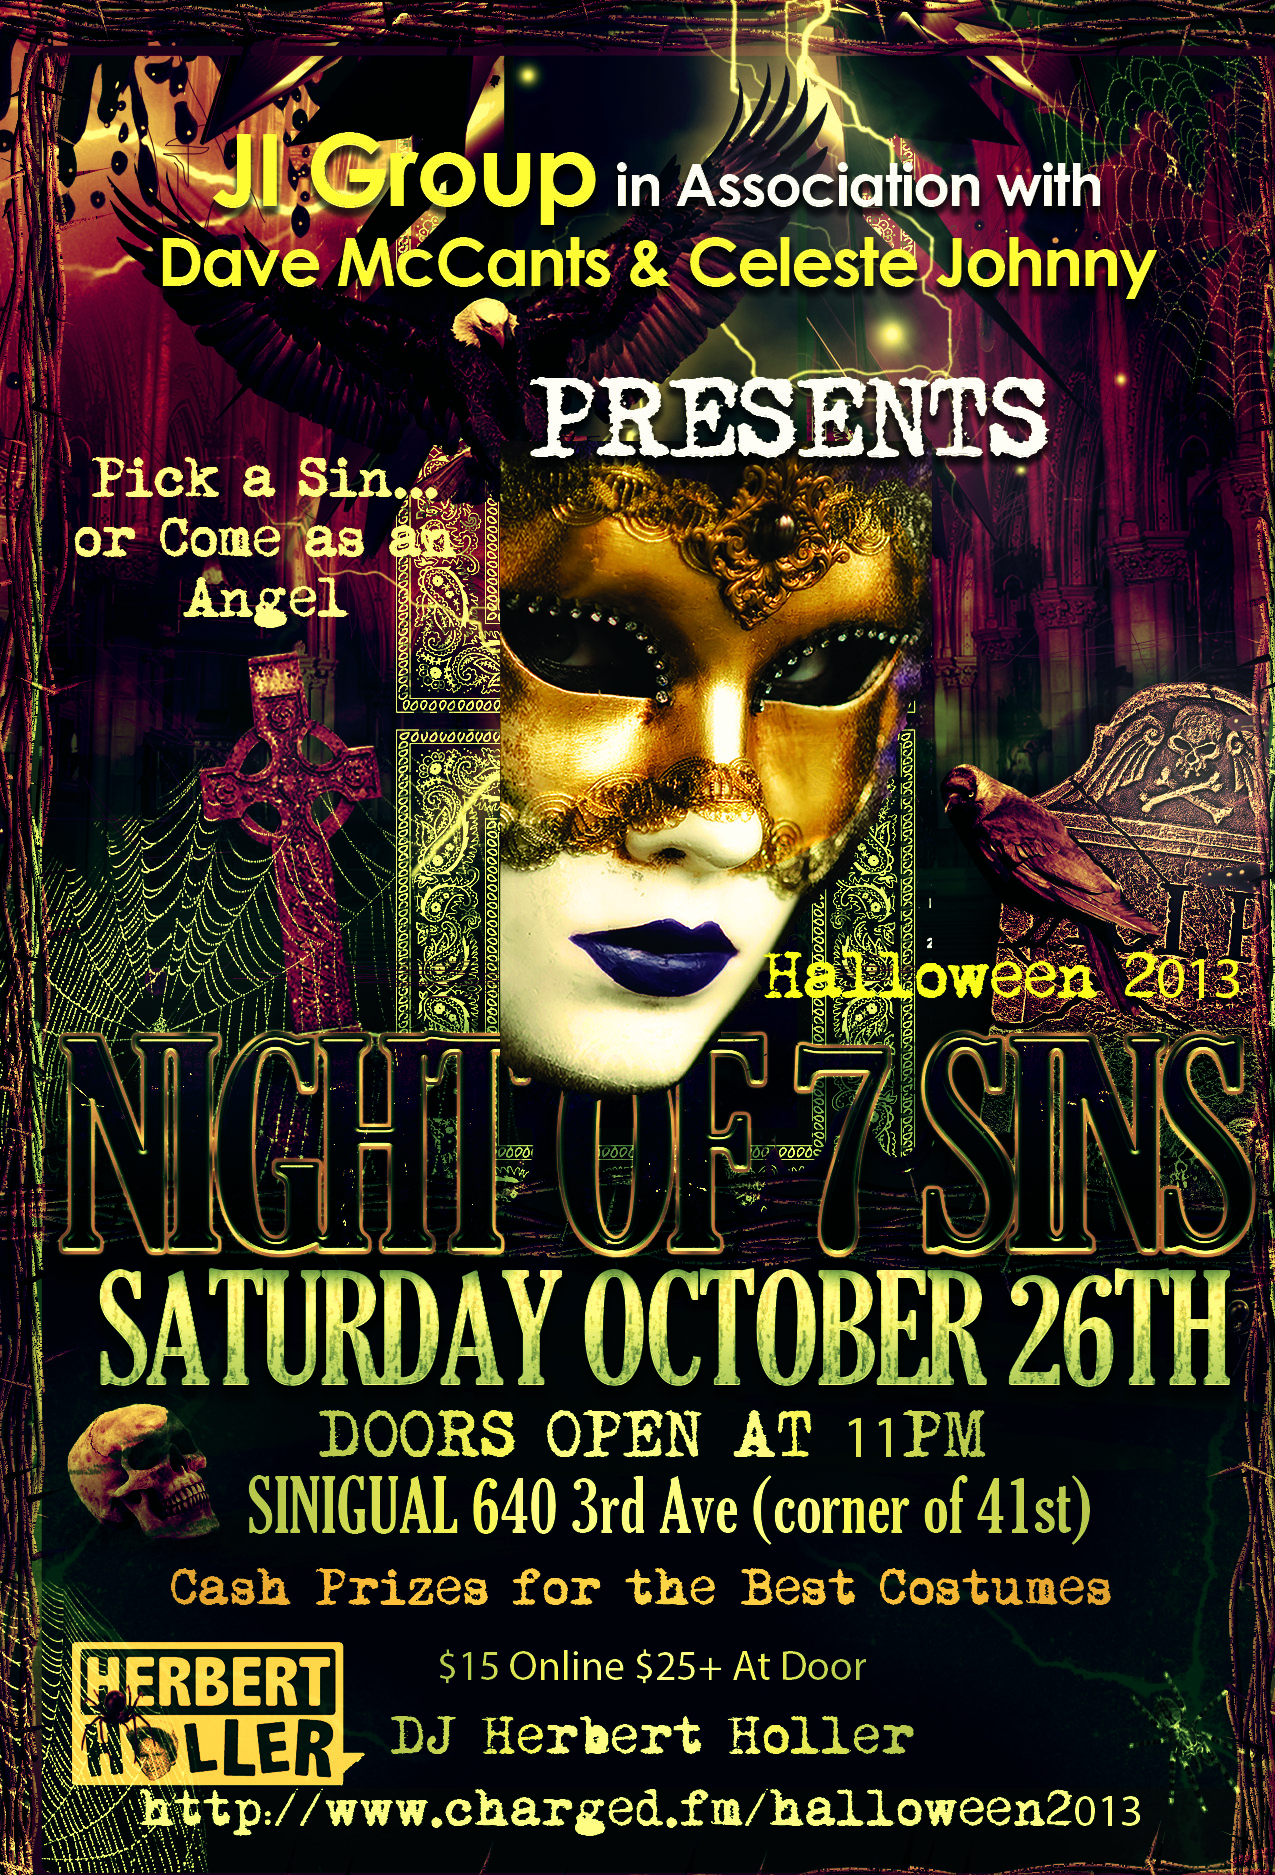 Dave McCants & Celeste Johnny in Association w/ the JI Group presents Night of 7 Sins Halloween Party!! • Social Capitale | Social Capitale